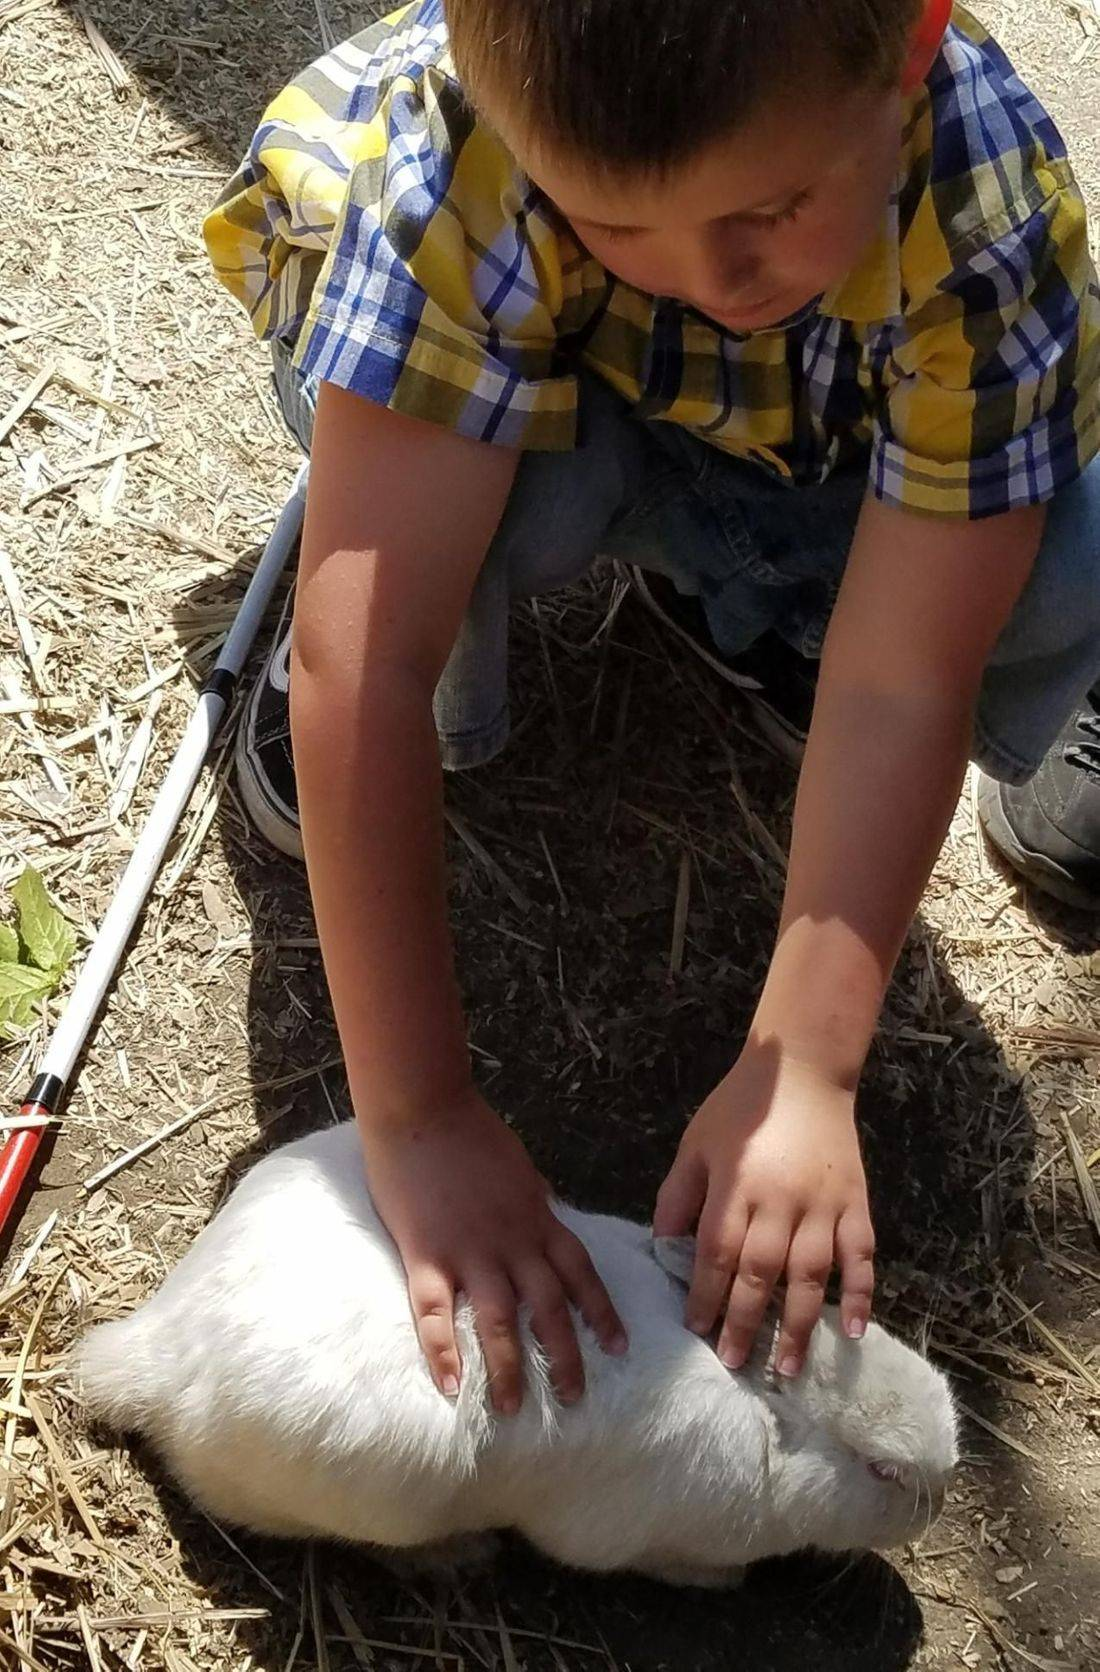 Blind child, sensory experience, petting live bunny